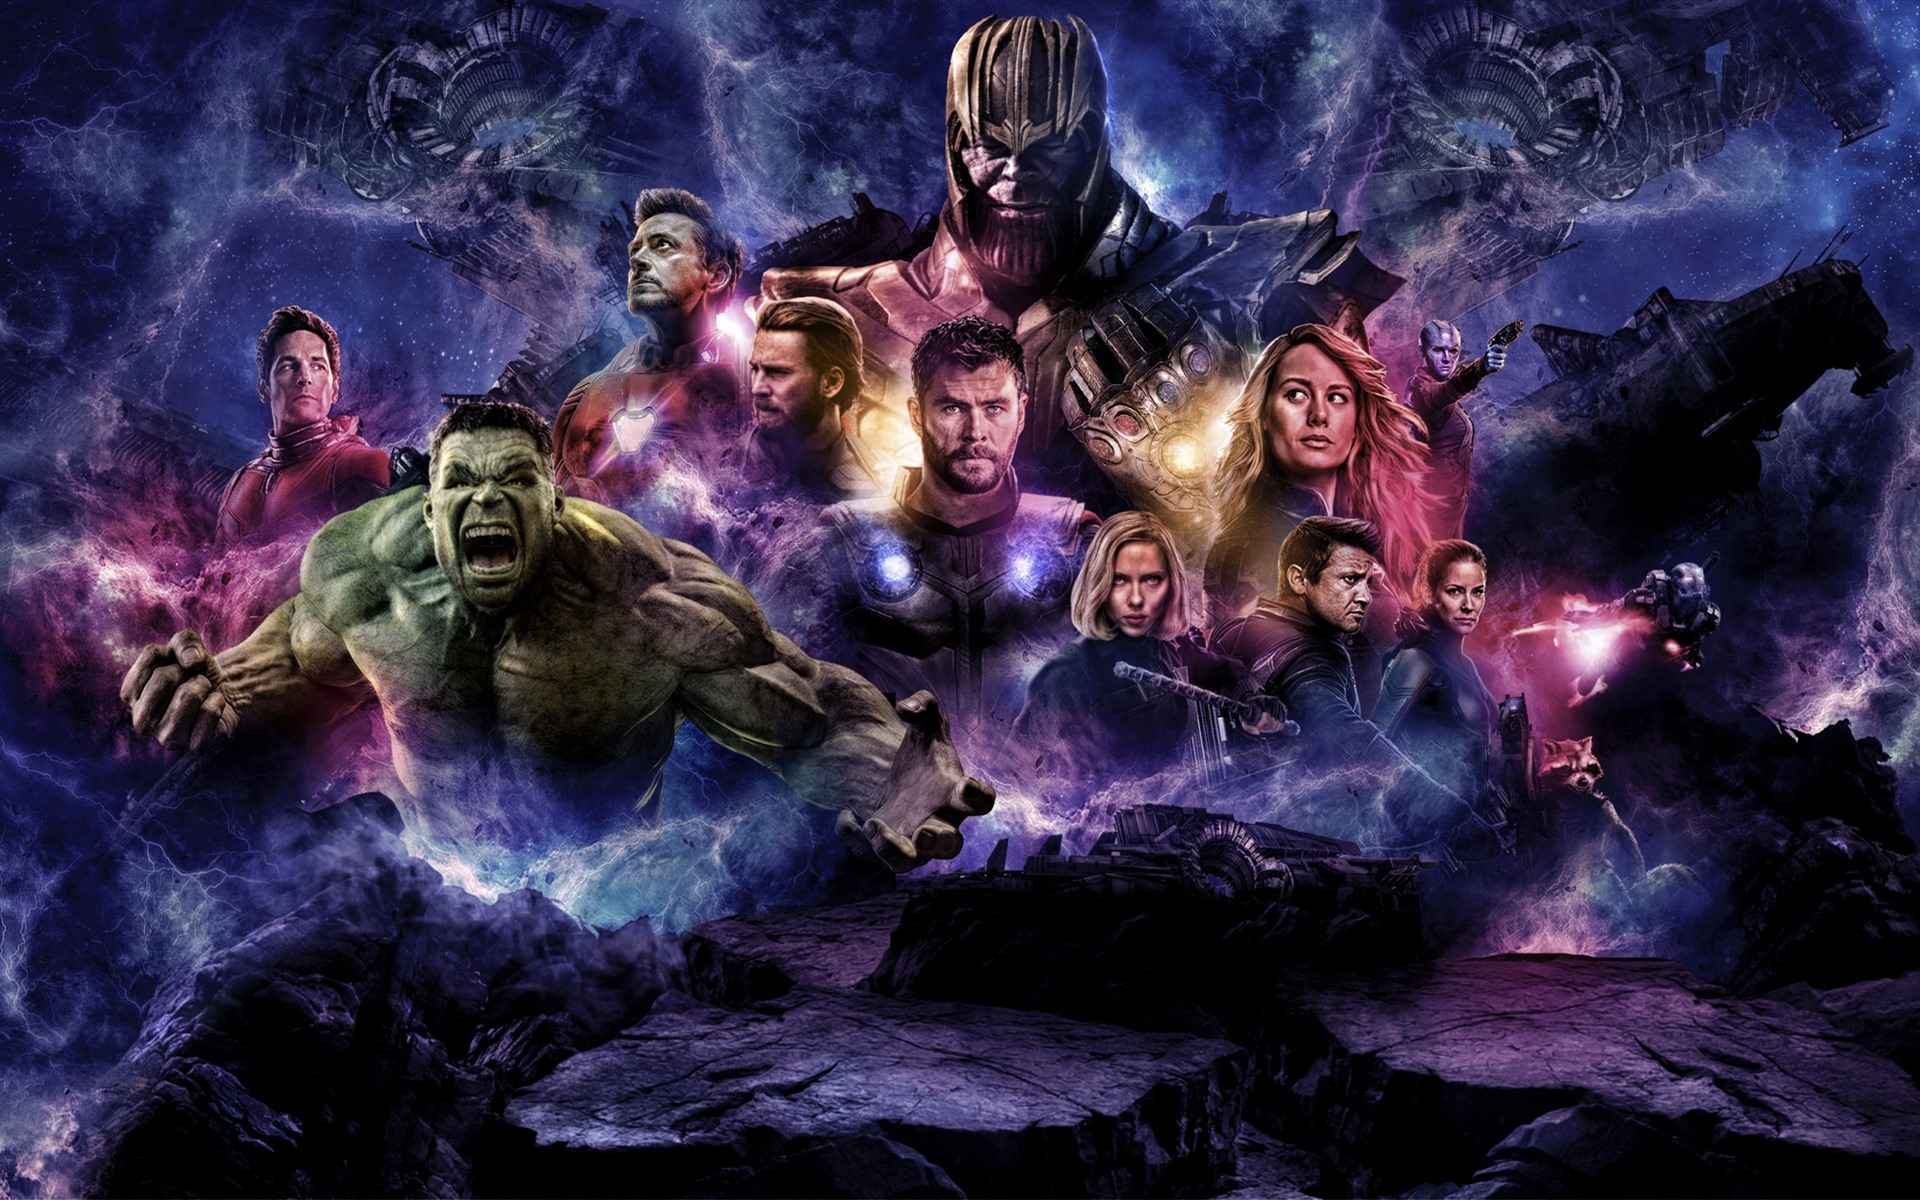 Best Themes Live Wallpapers For Iphone 5s 5c 4s 4 Ios 7: Wallpaper Avengers: Endgame, DC Comics Movie 2019